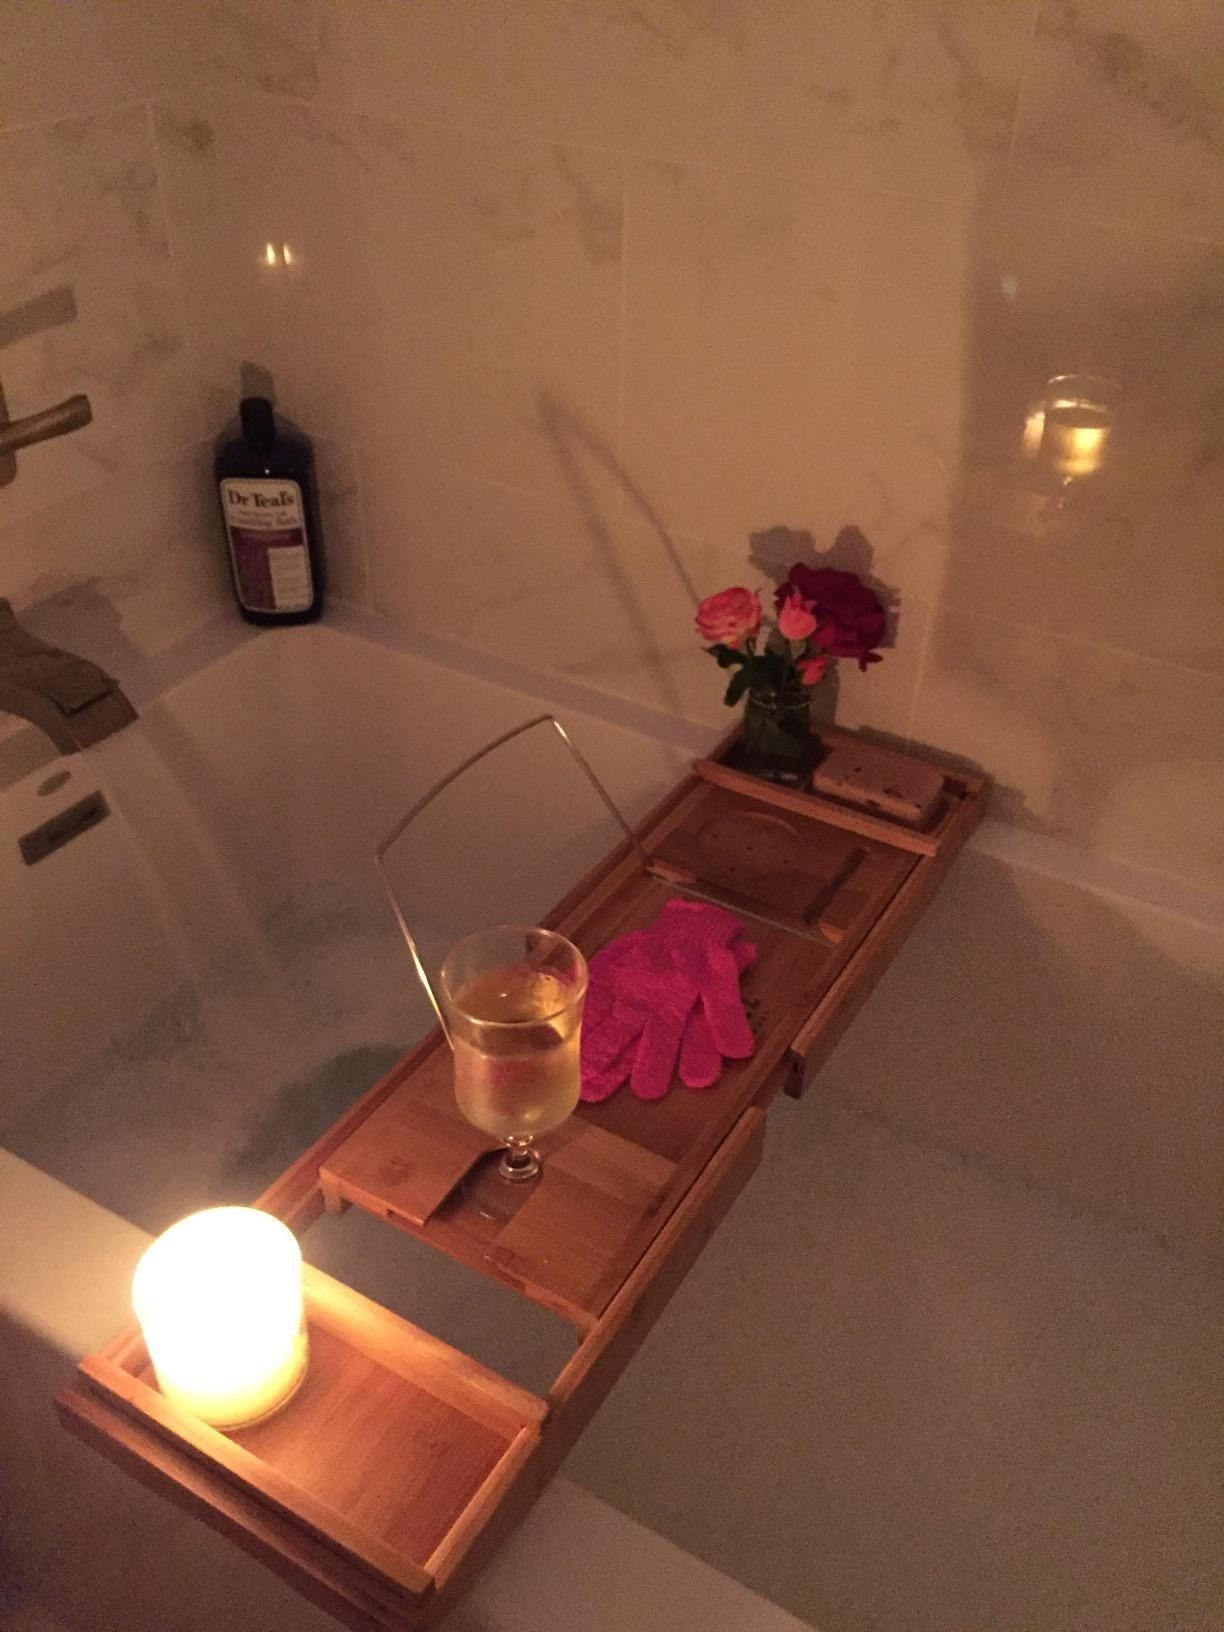 Reviewer image of a bath caddy with wine, candle, and flowers on it